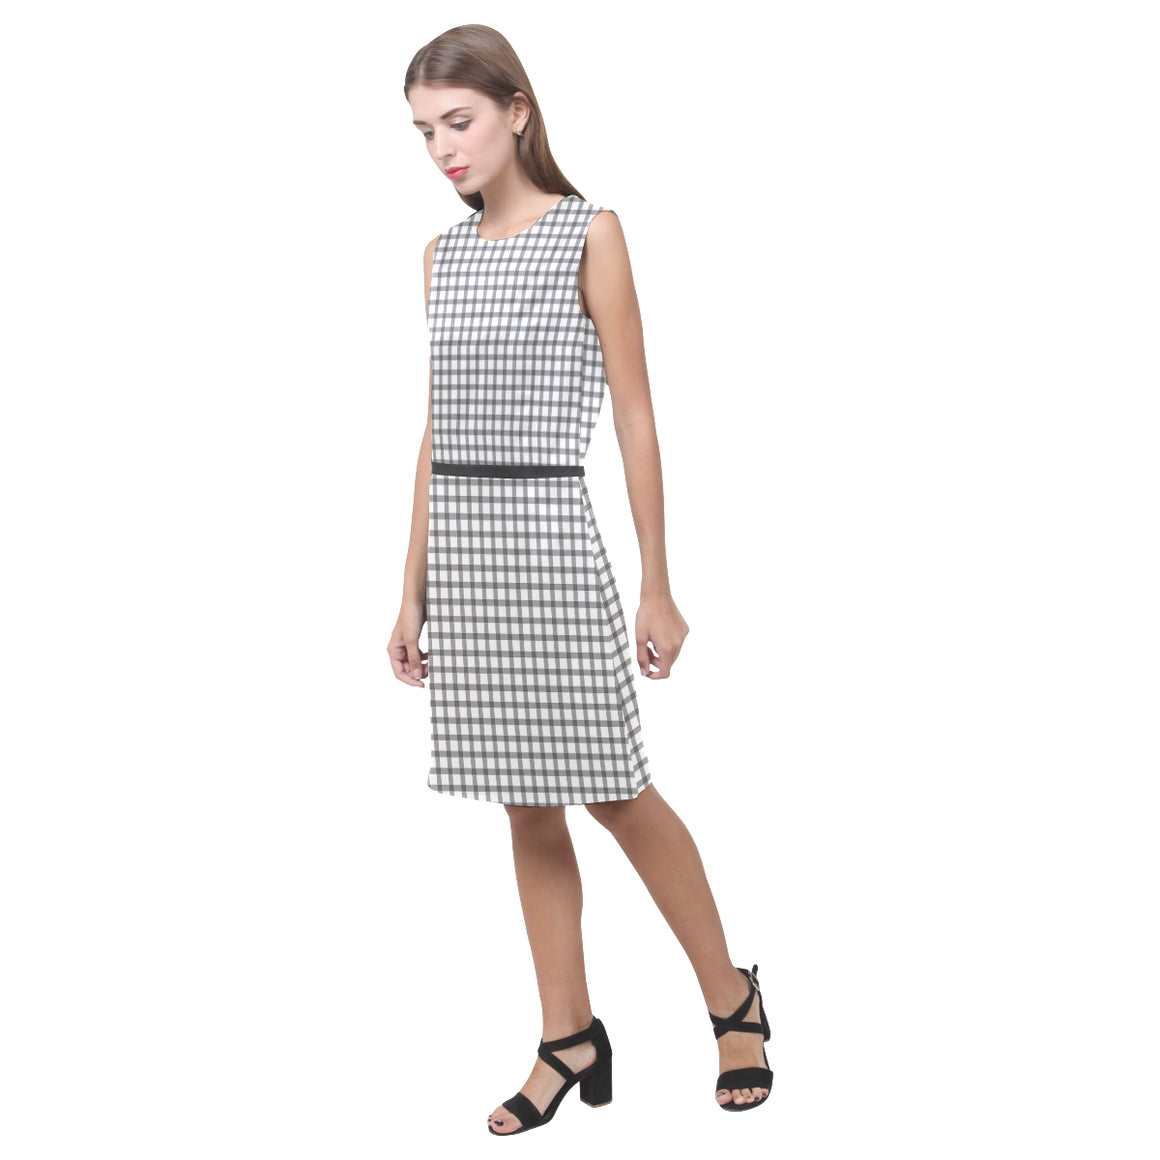 Mizo Black White Stripes Black Belt Eos Women's Sleeveless Dress - I Am A Dreamer